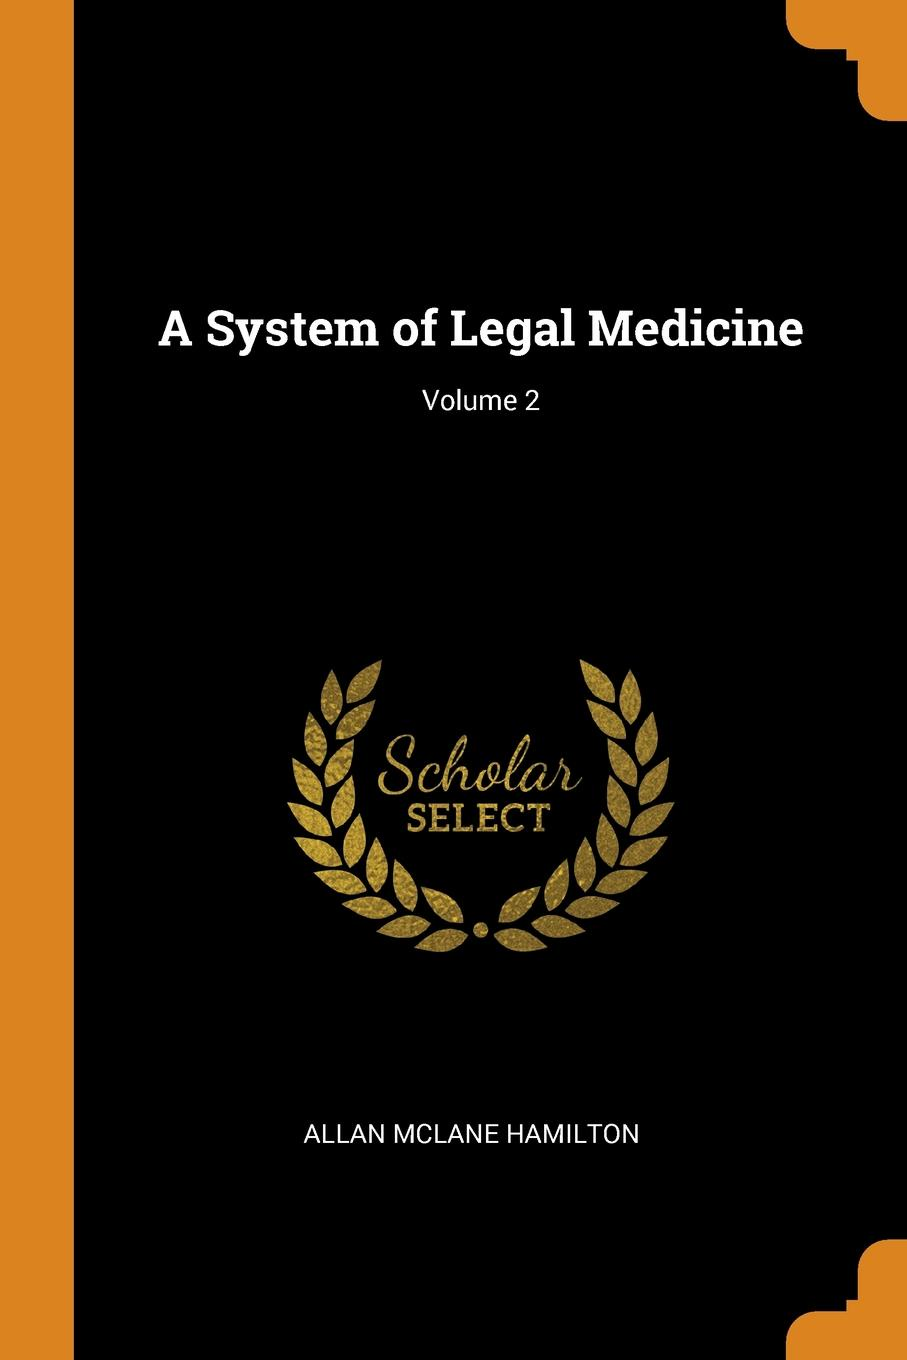 A System of Legal Medicine; Volume 2. Allan McLane Hamilton